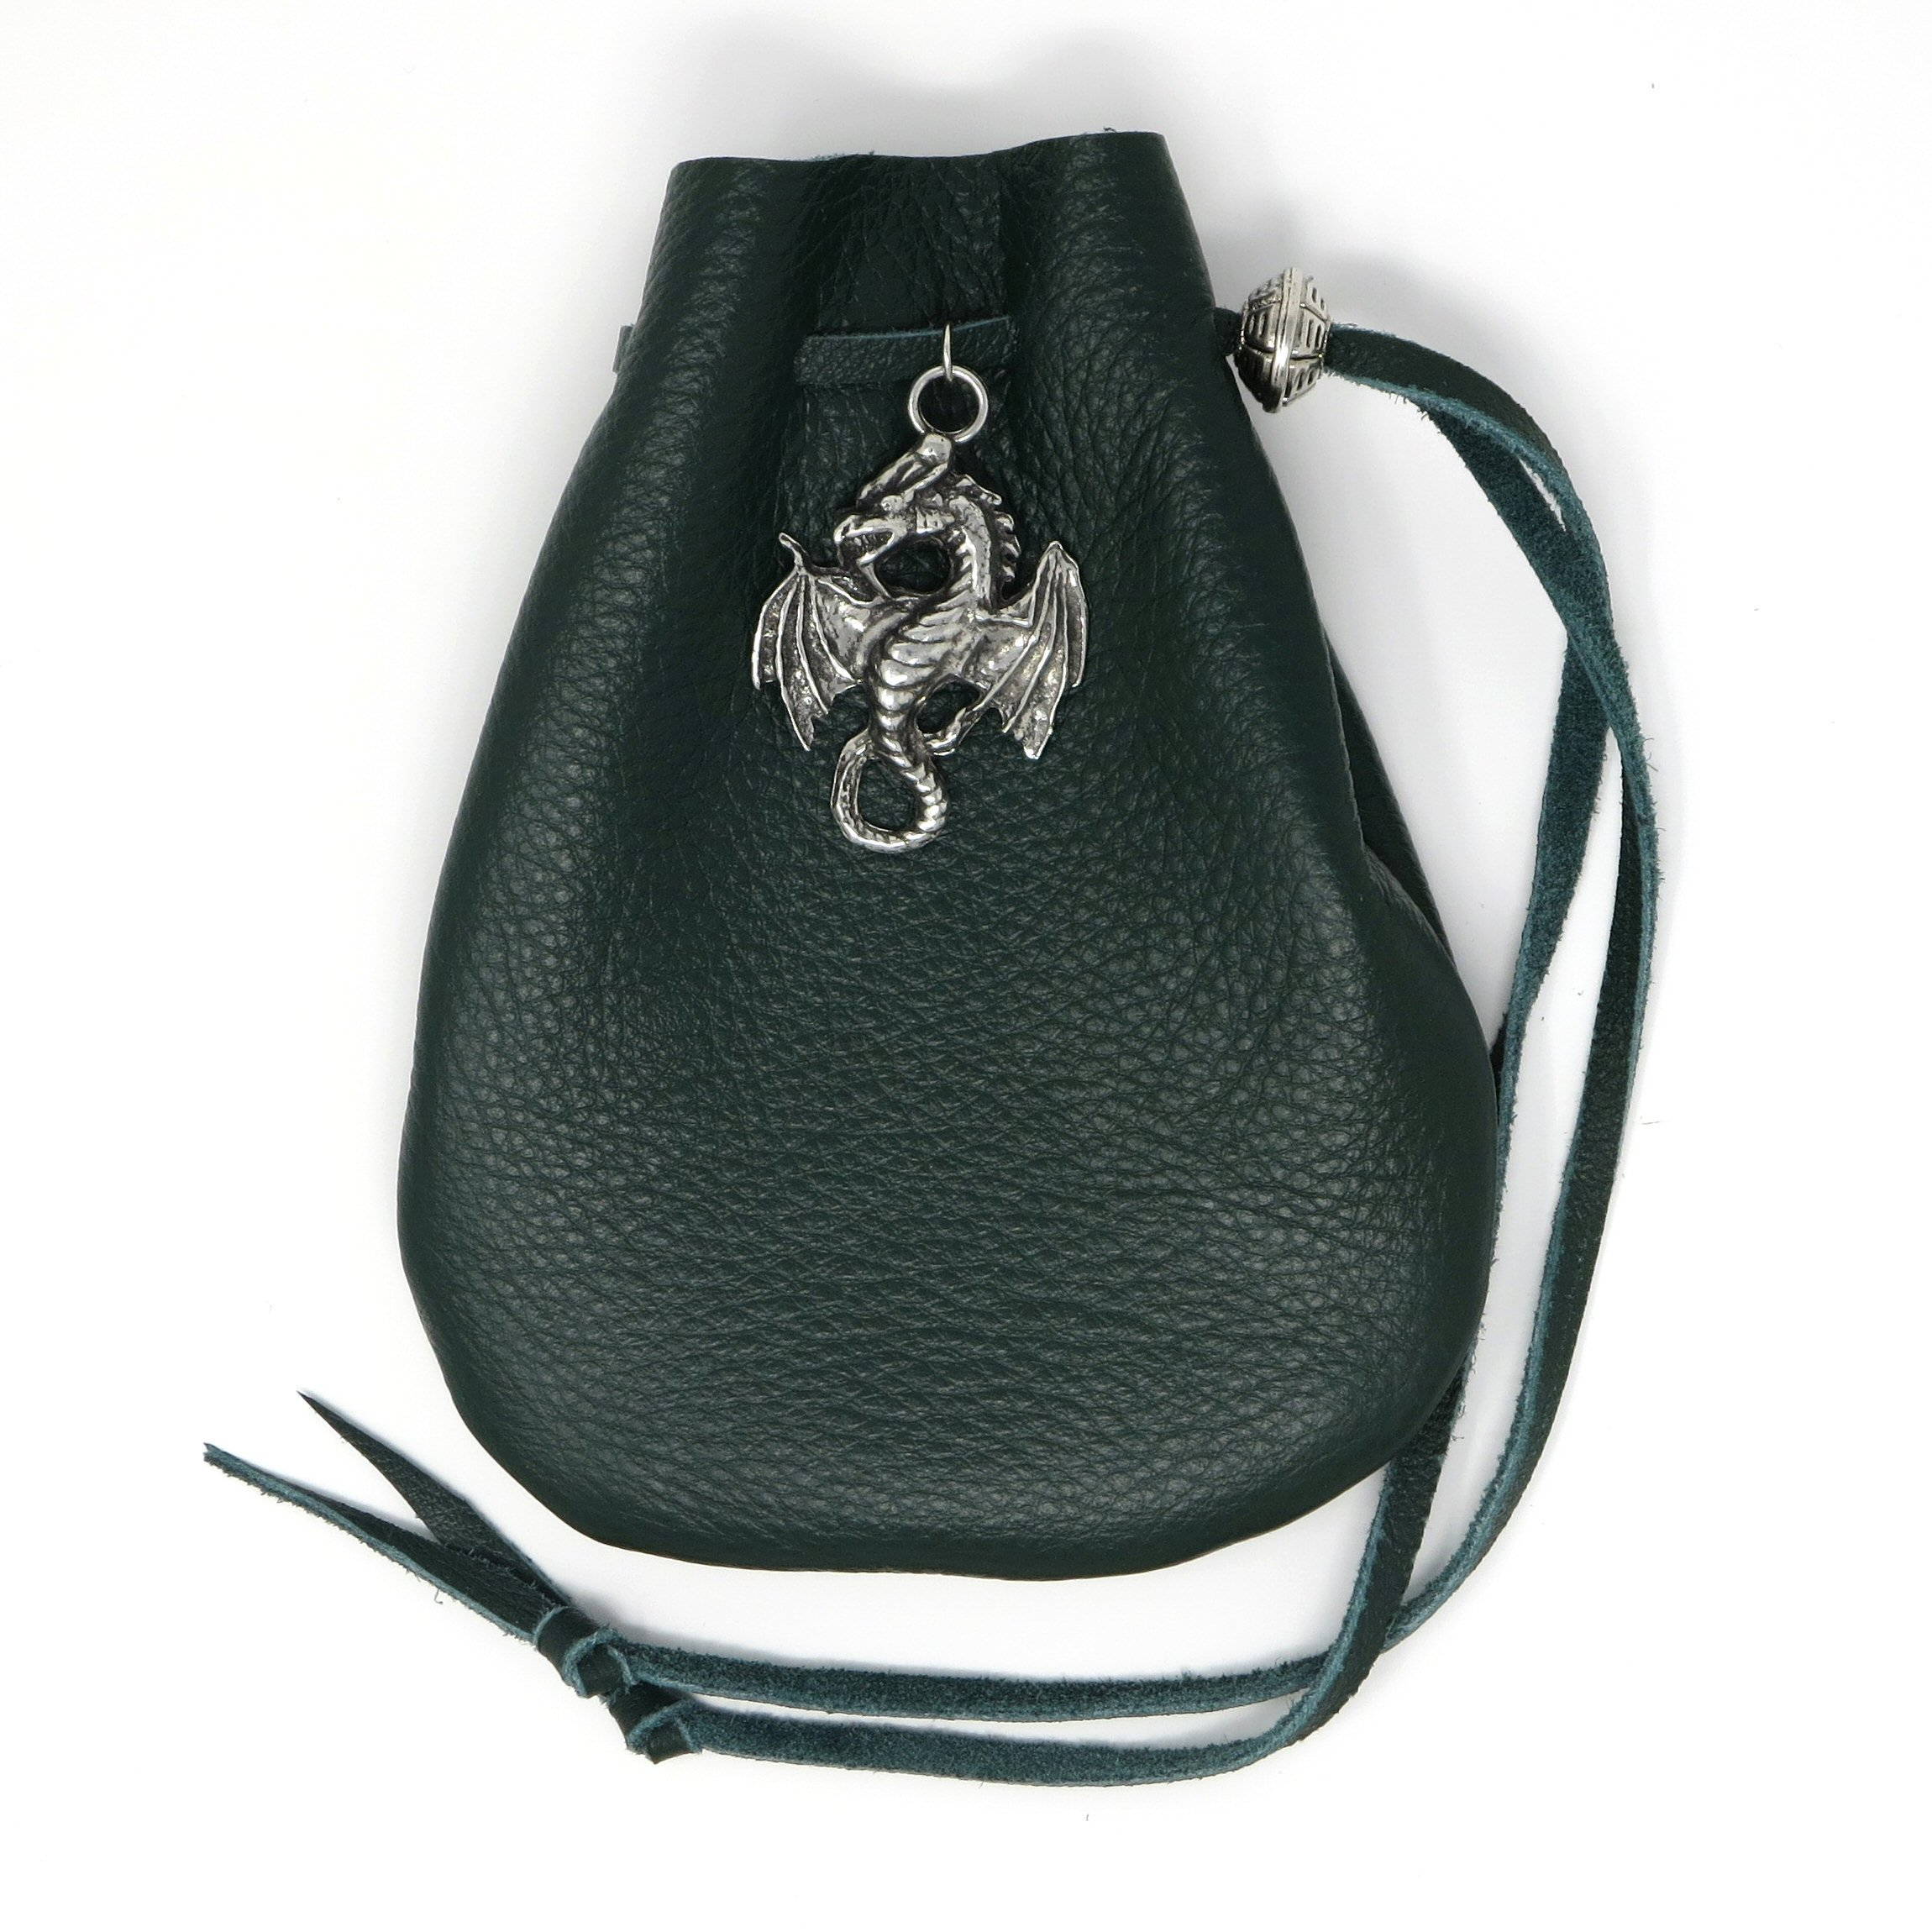 Green Leather Dice Bag with Dragon